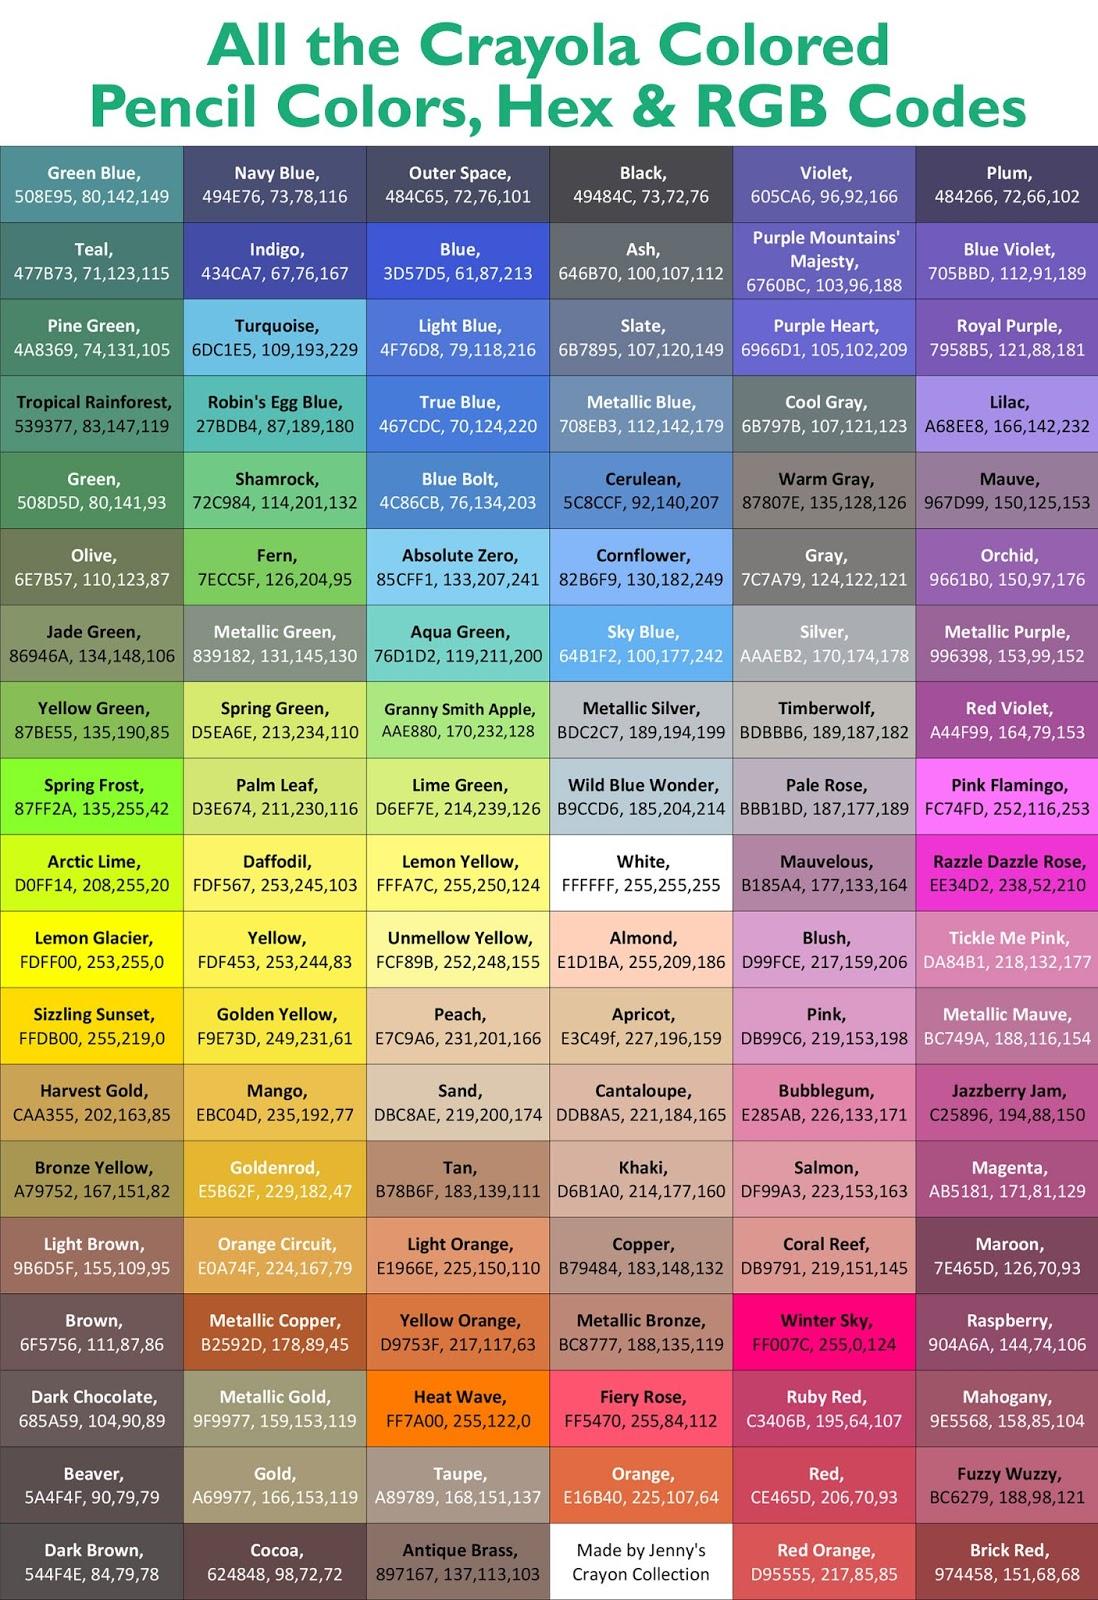 complete list of current crayola colored pencil colors